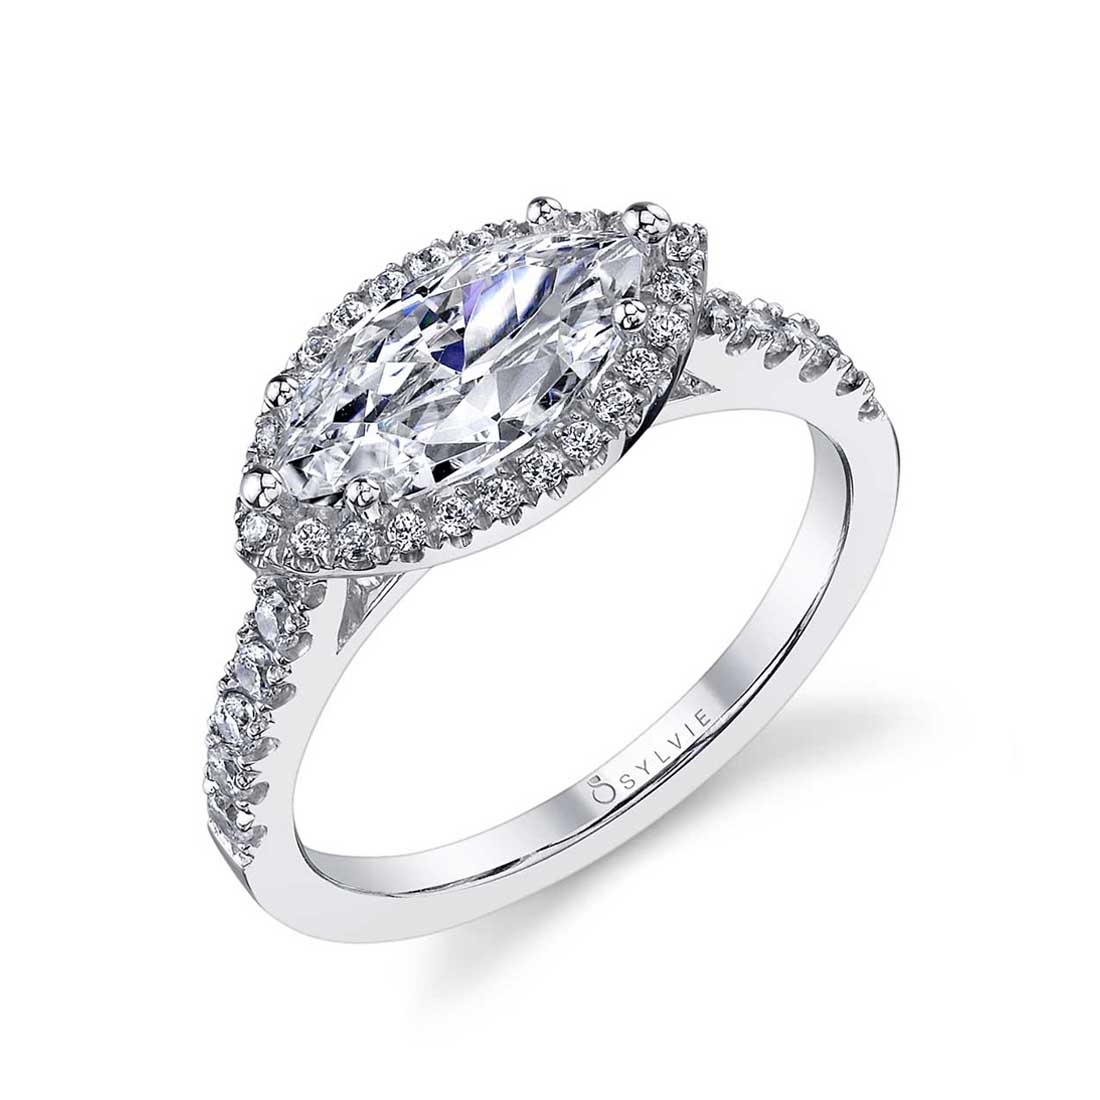 East West Marquise Engagement Ring with Halo Sylvie-SY980